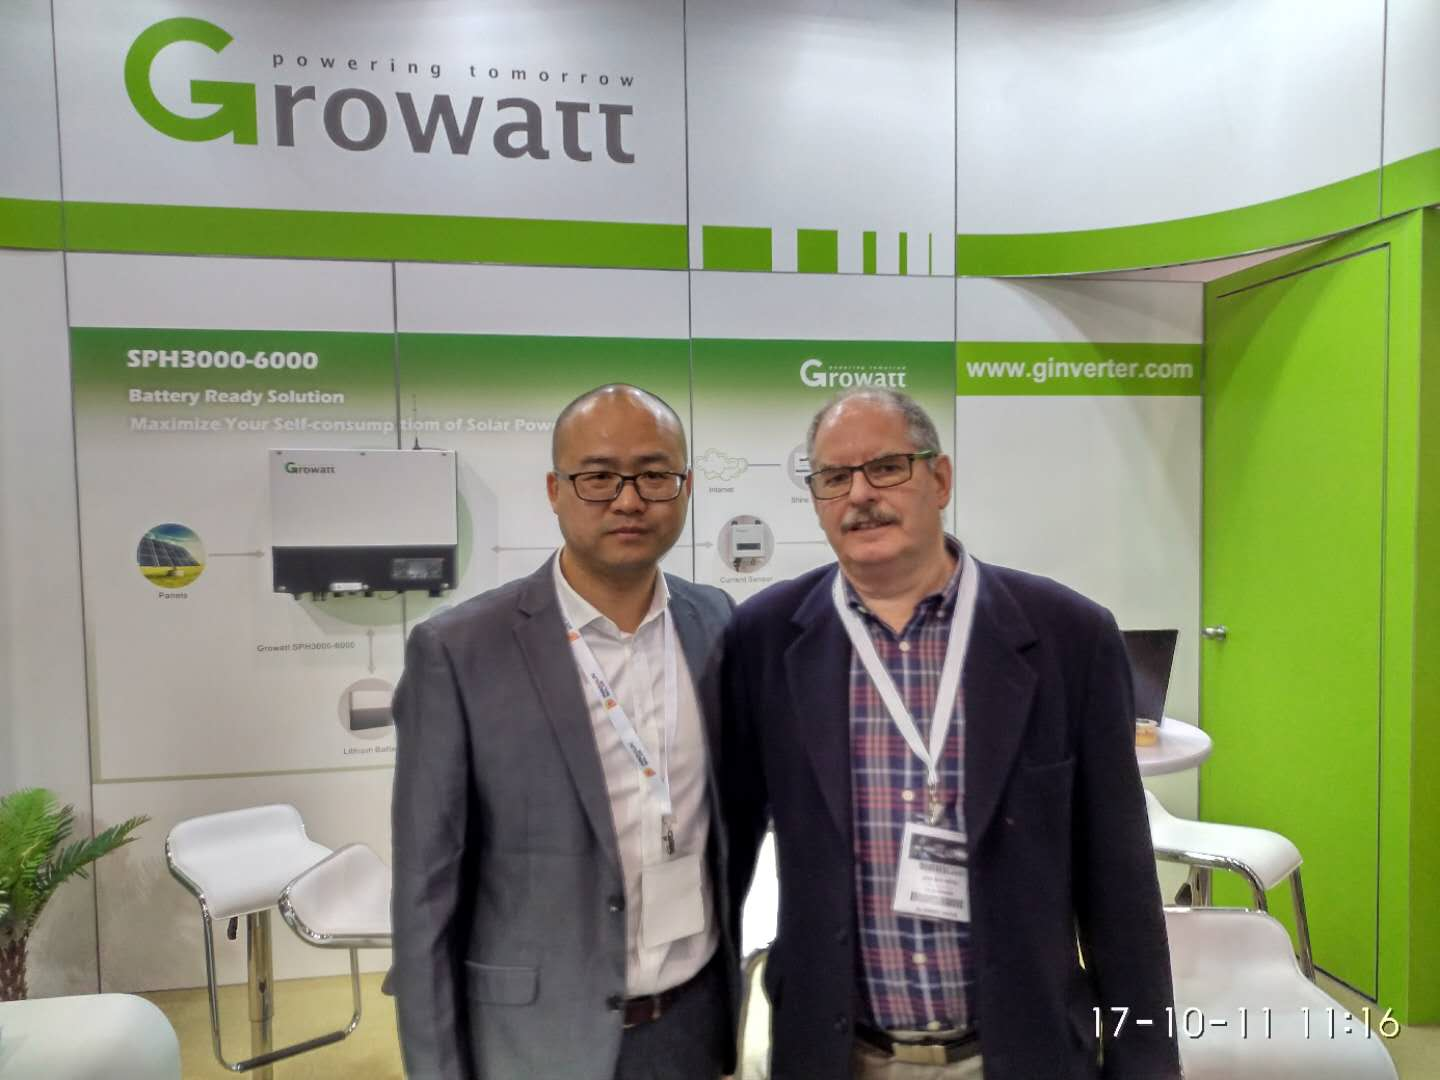 Company news-Growatt strengthens its leading market position in Australia